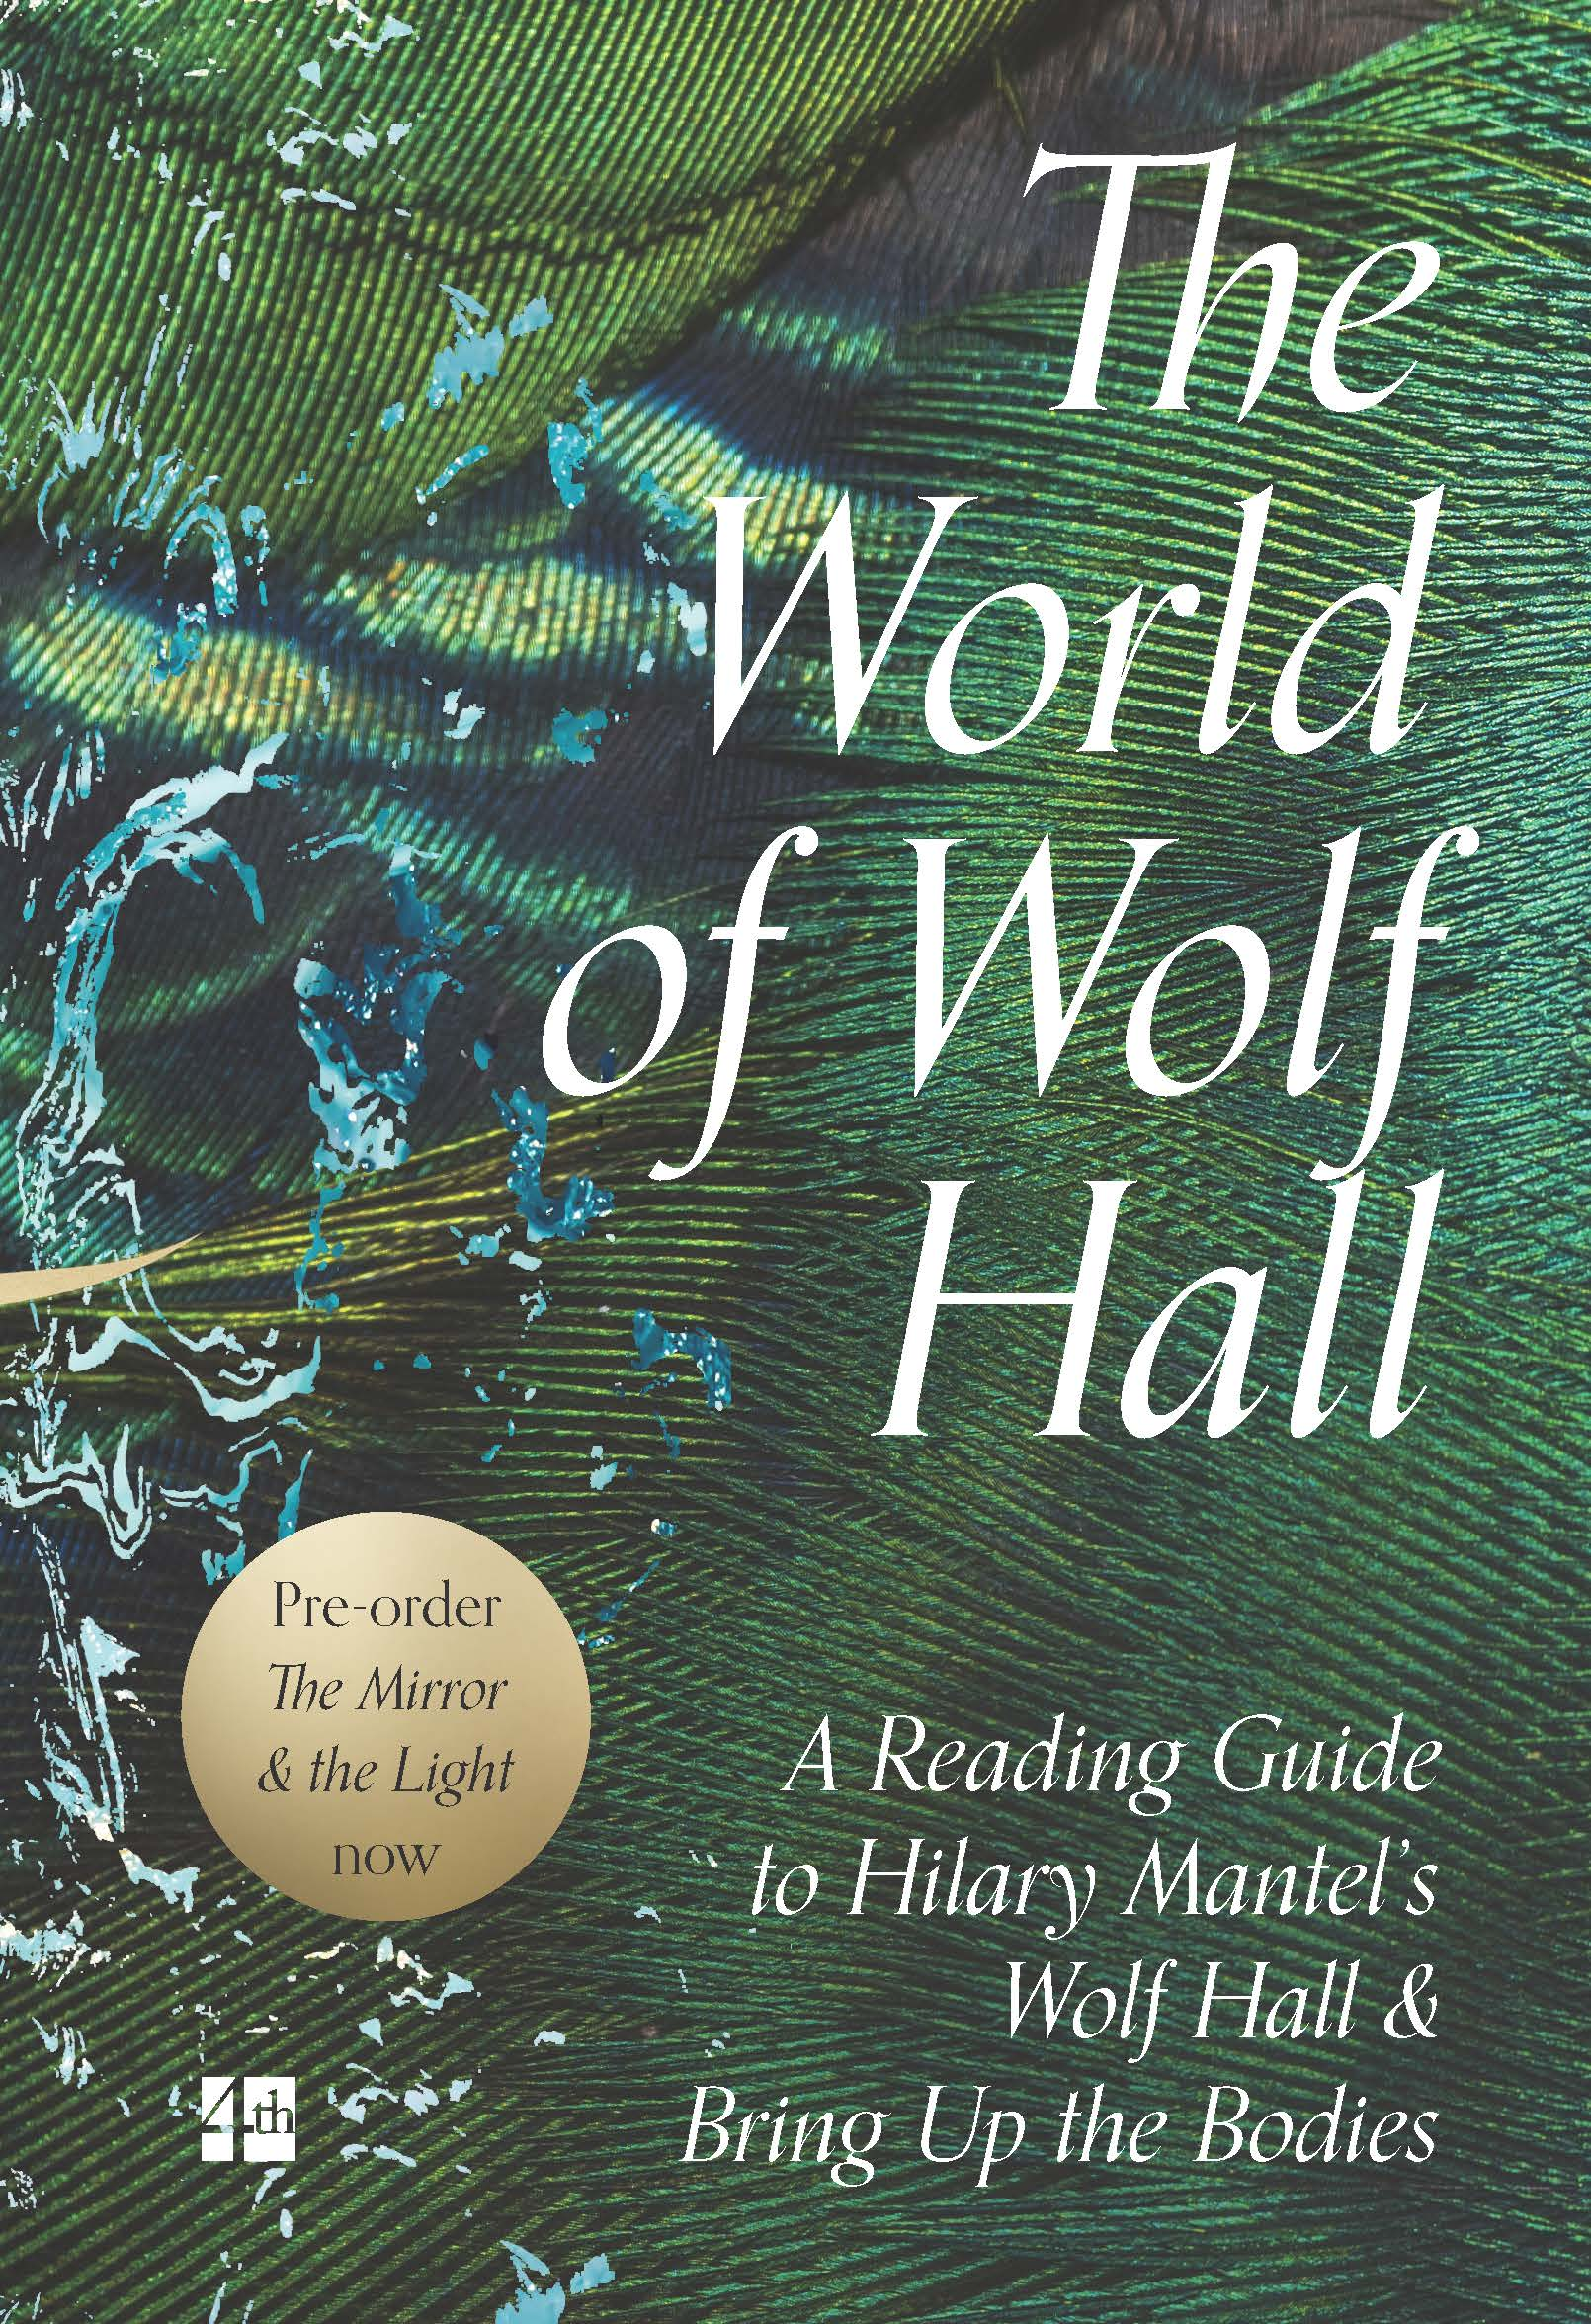 The world of wolf hall